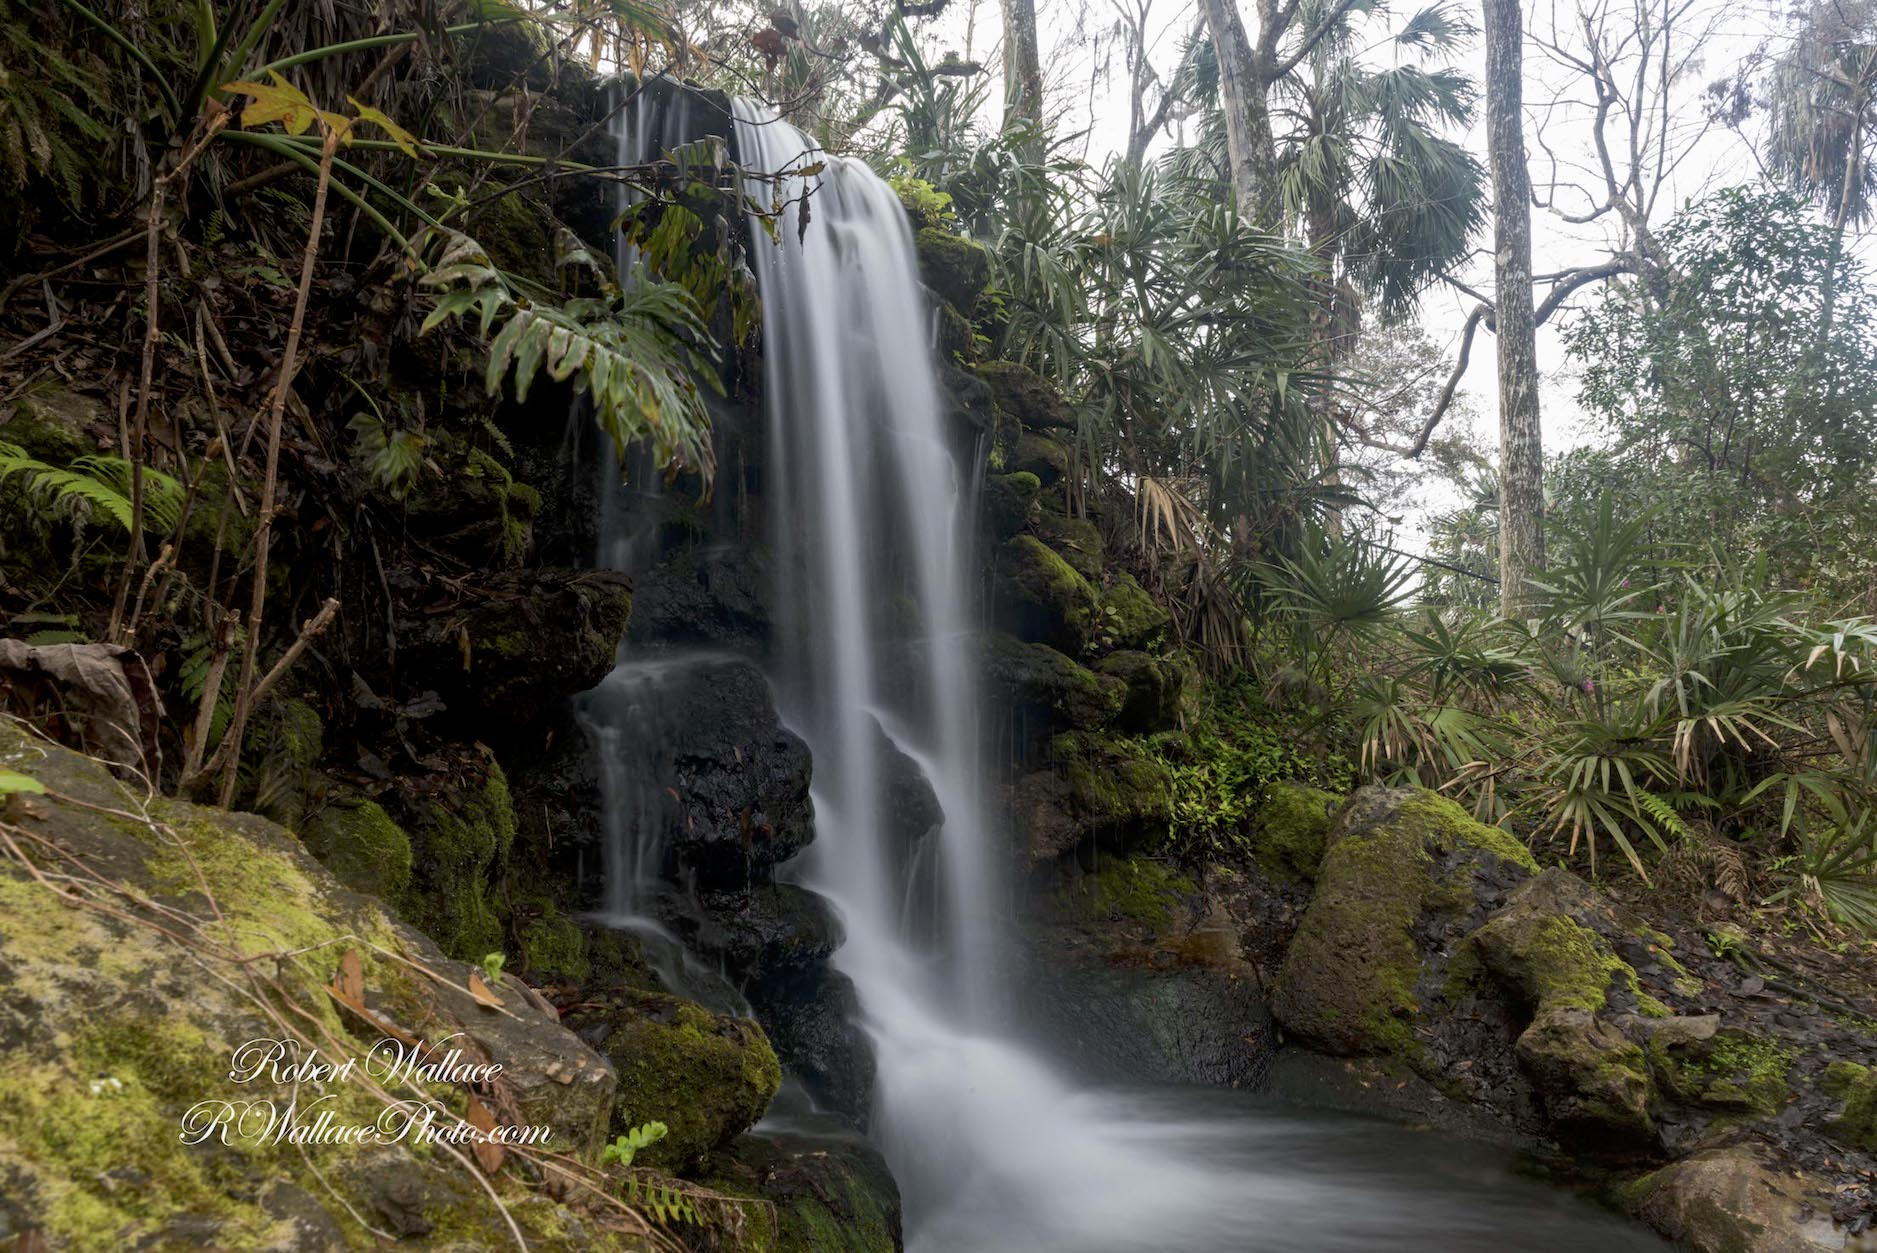 Found! Waterfalls in a Secret Natural Paradise in Florida